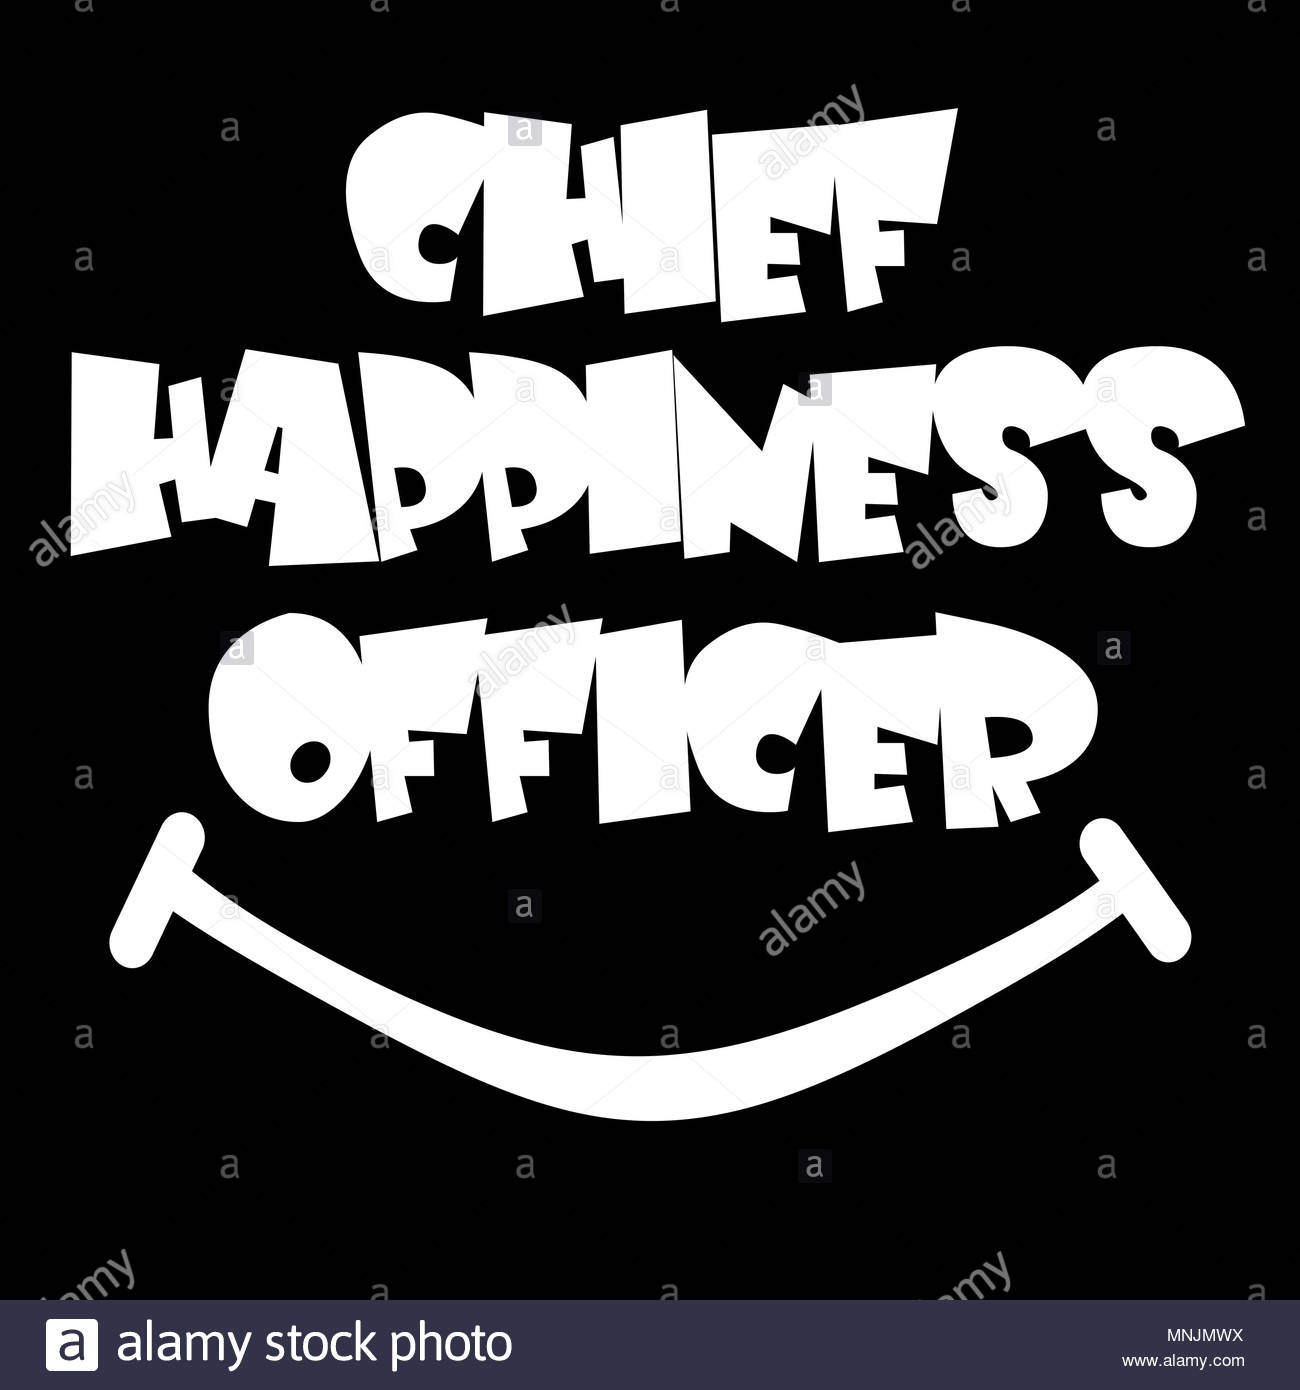 Digitial Illustration. Chief Happiness Officer. In the some businesses the well being of employees is held in such regard that they have employees who - Stock Image